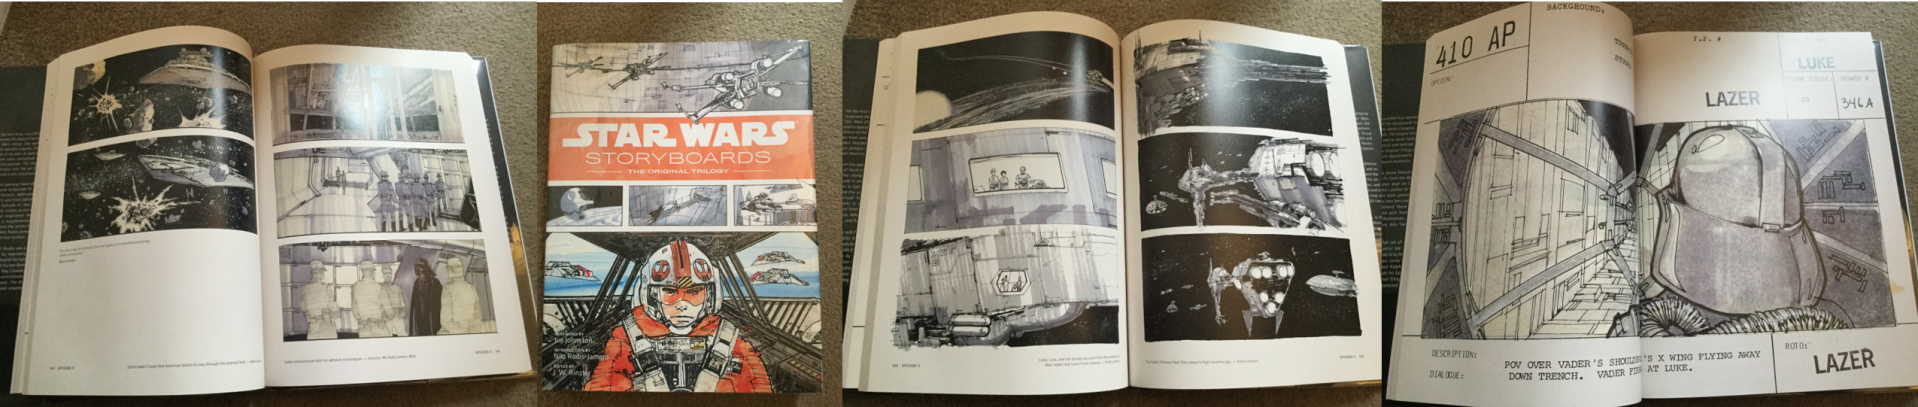 Examples of Star Wars Storyboards